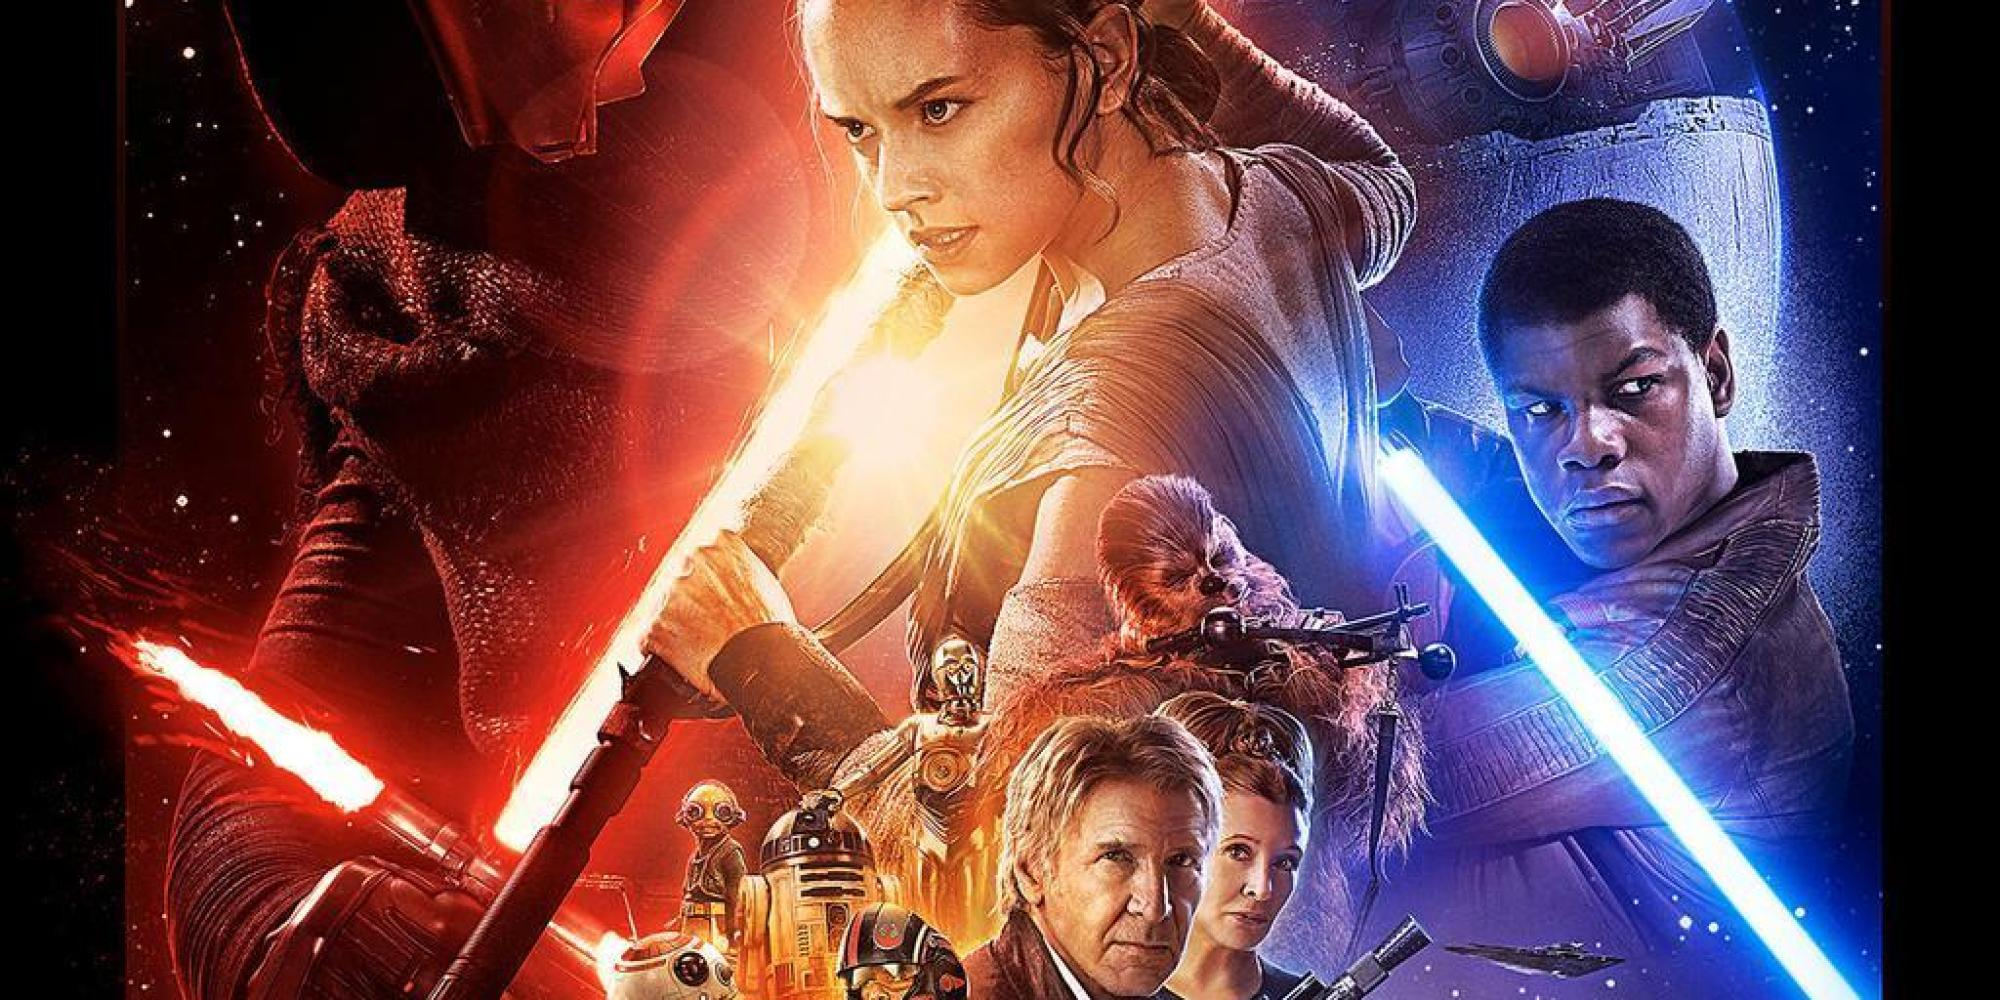 star wars the force awakens new poster unveiled as hype builds towards december release. Black Bedroom Furniture Sets. Home Design Ideas